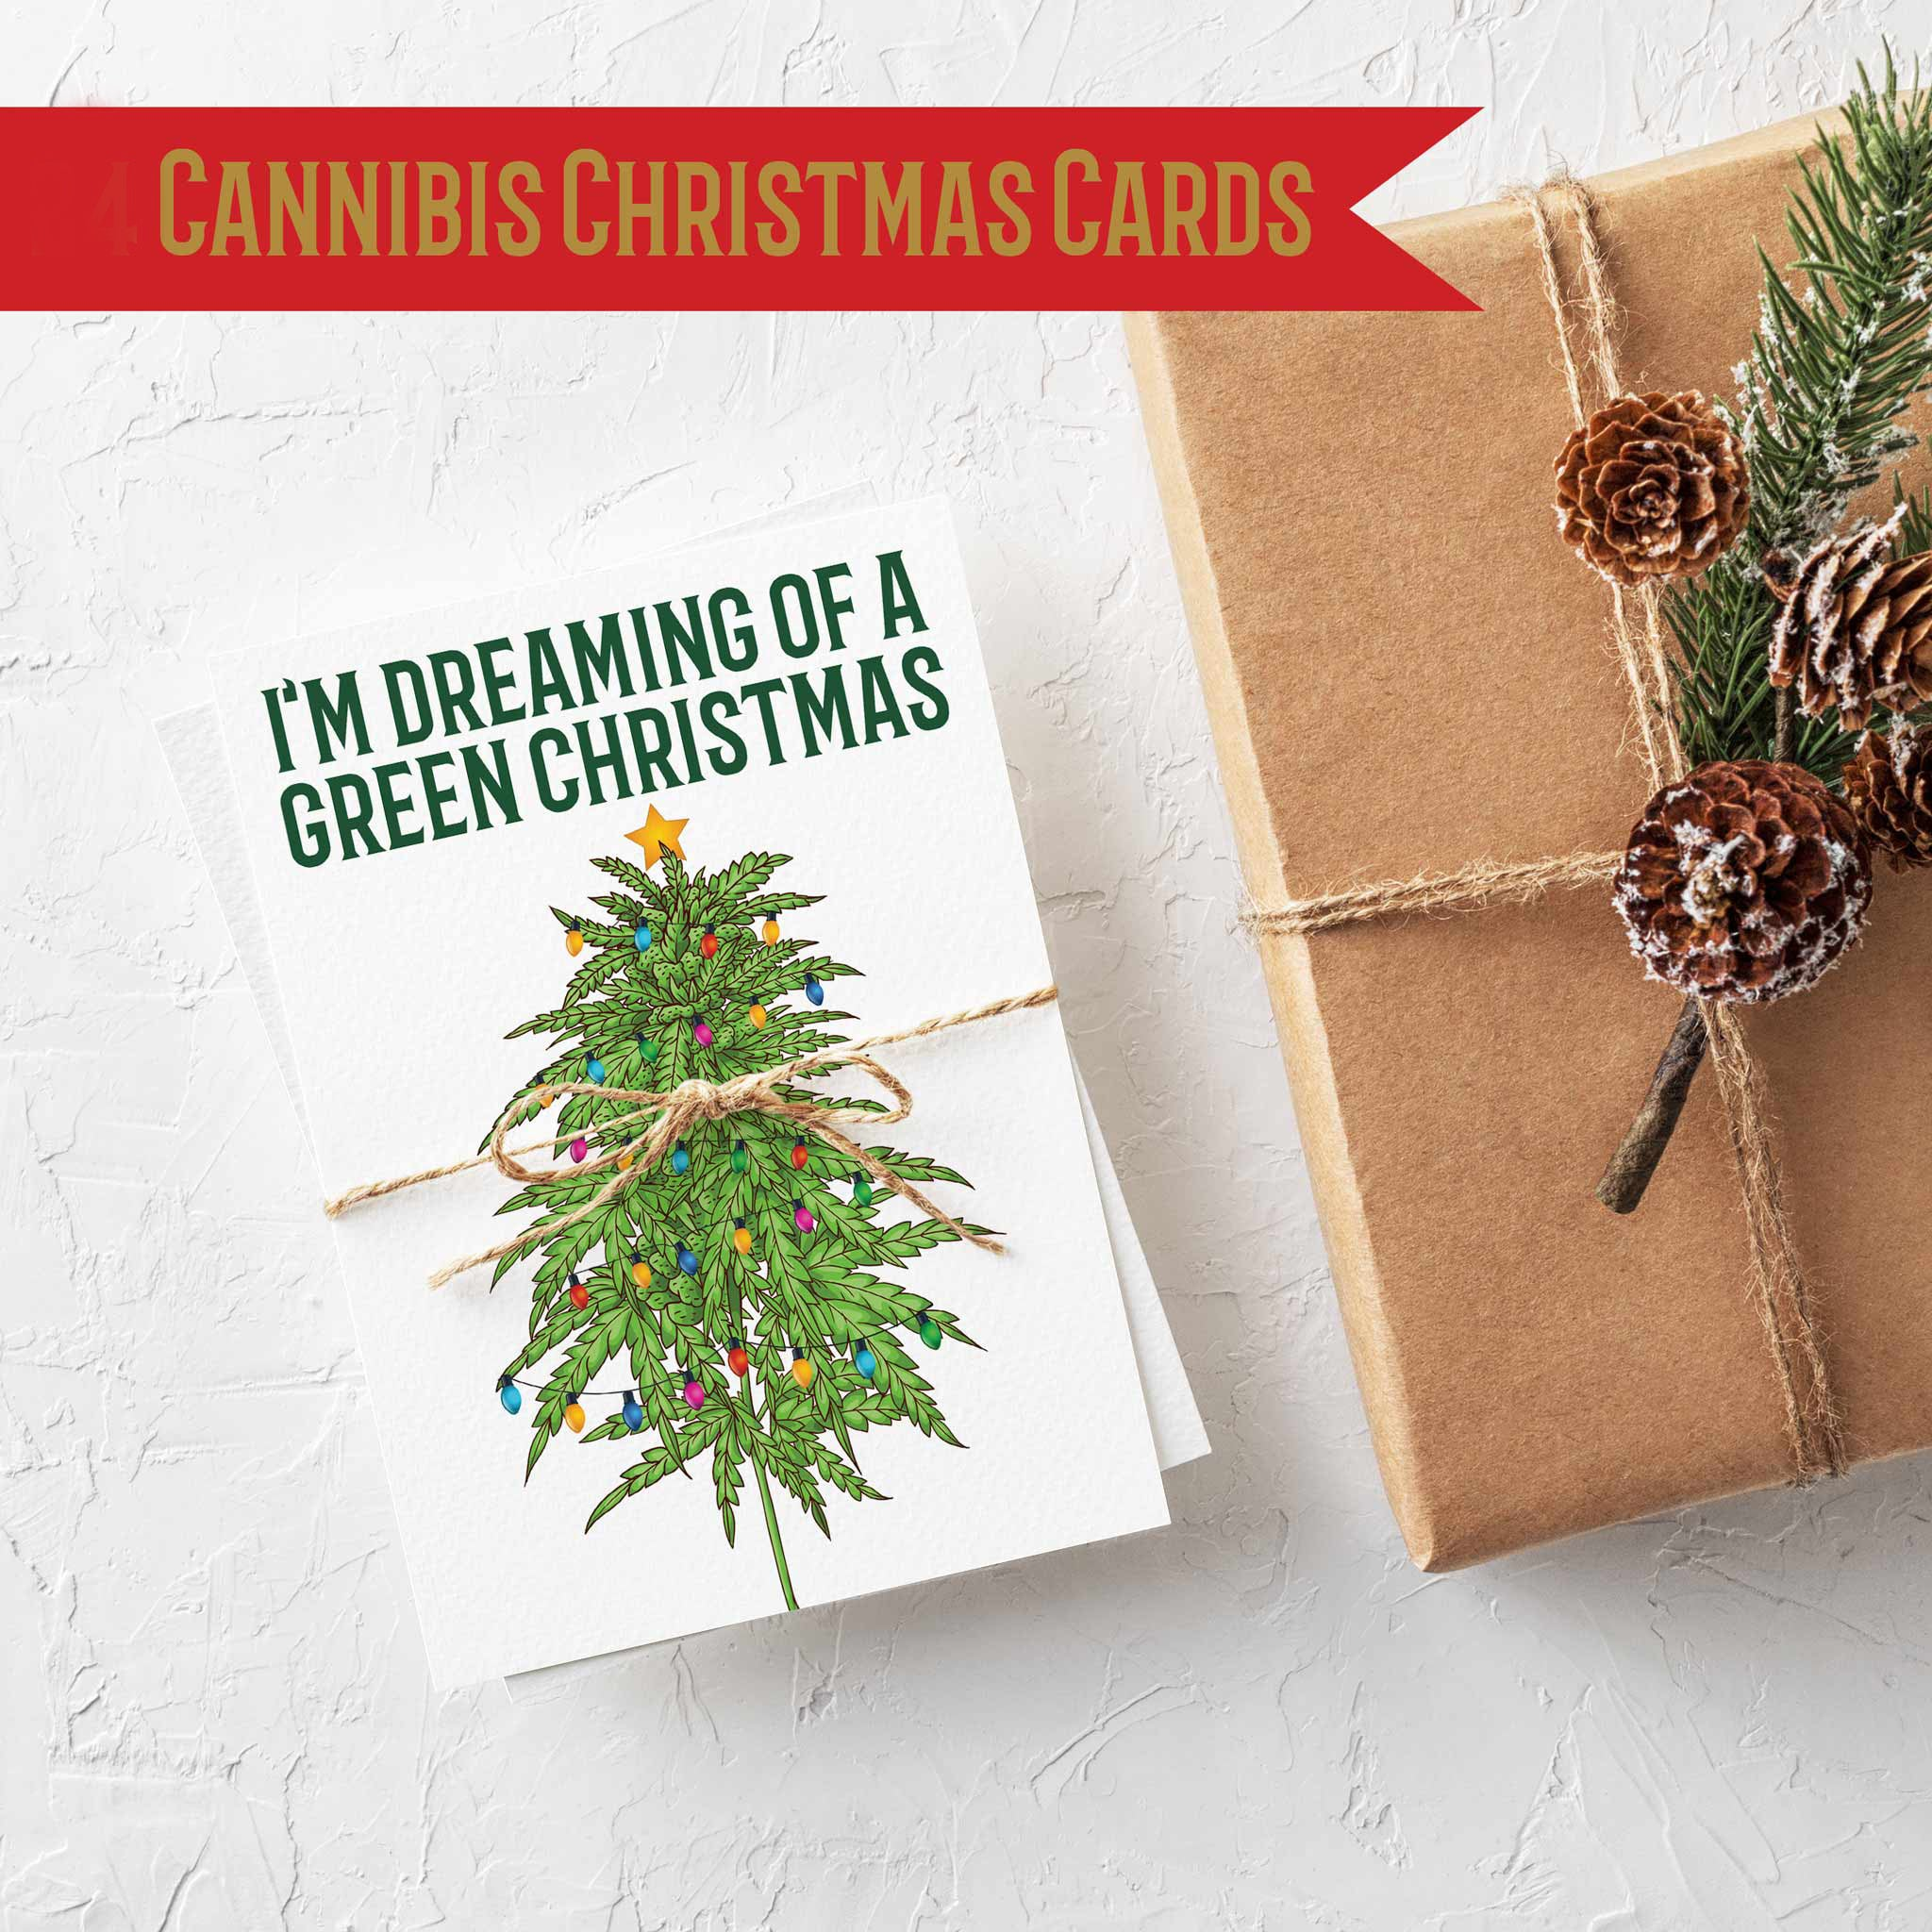 cannabis themed christmas cards 24 count for marijuana weed culture ritzy rose cannabis themed christmas cards 24 pack